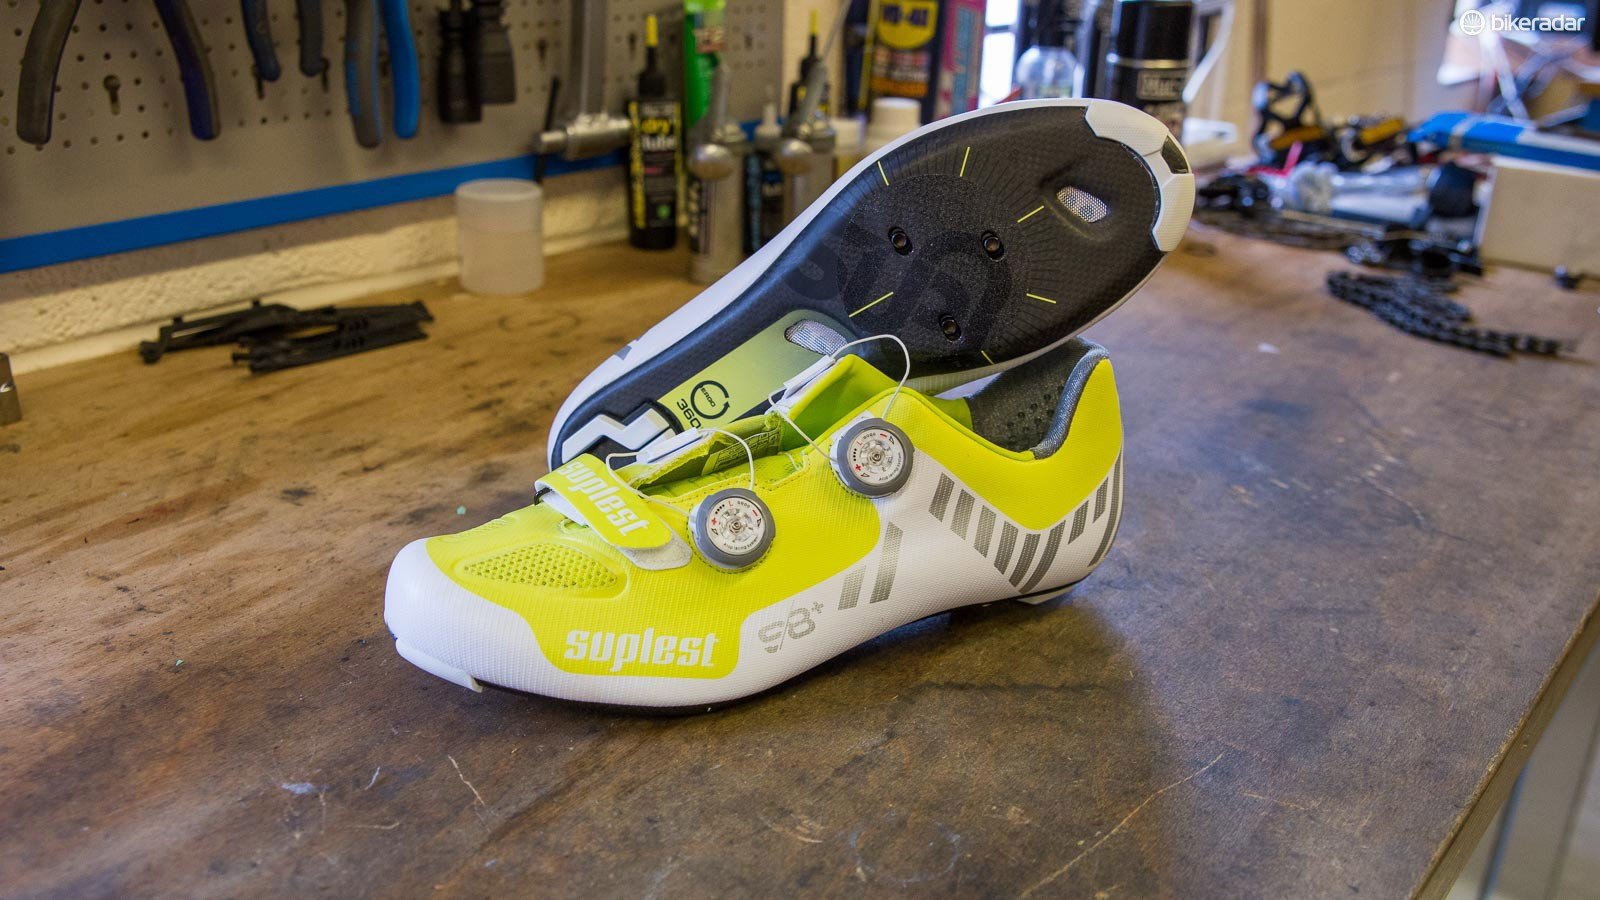 Suplest Streetracing Carbon shoes